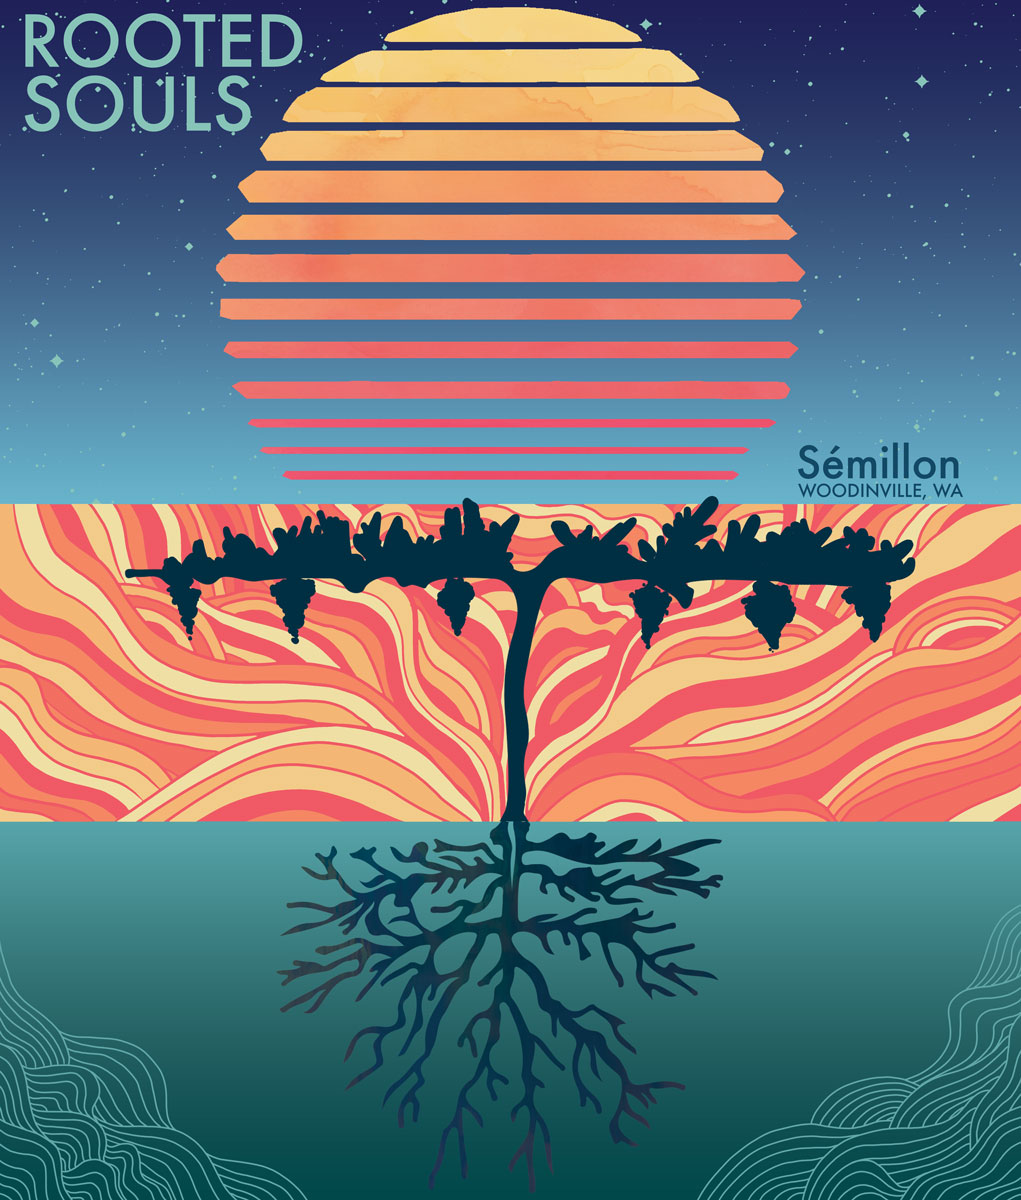 Rooted Souls Winery 2018 Semillon Label